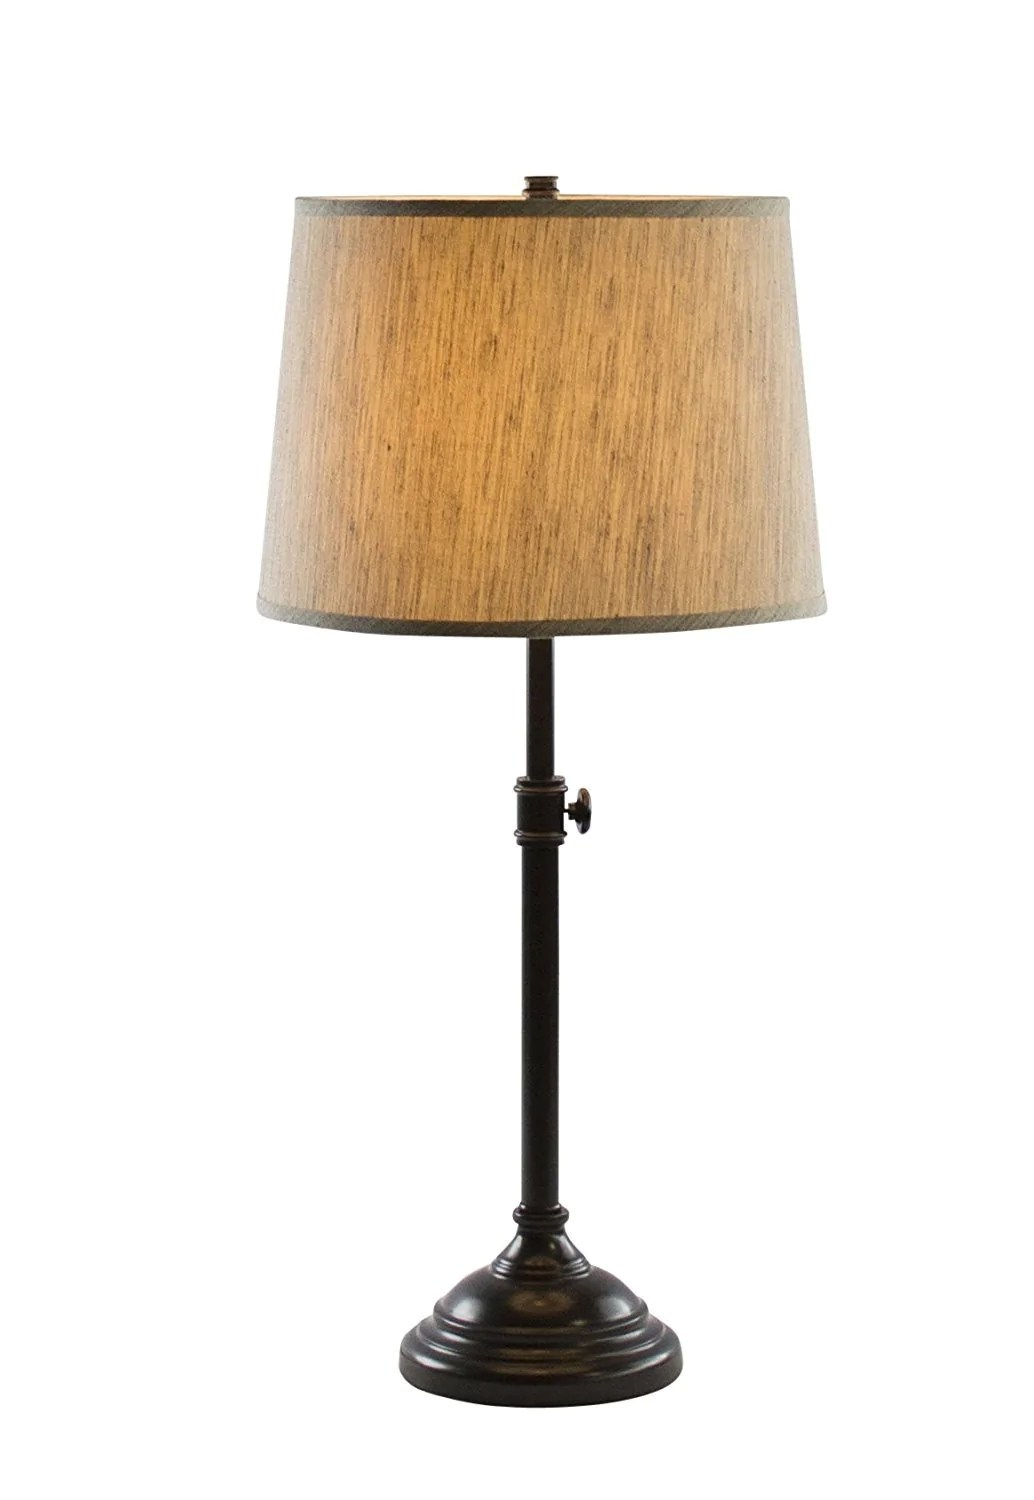 Table Lamp Base Windsor Adjustable Table Lamp Oil Rubbed Bronze Finish Lamp Base With Gray Tone Natural Linen Lampshade